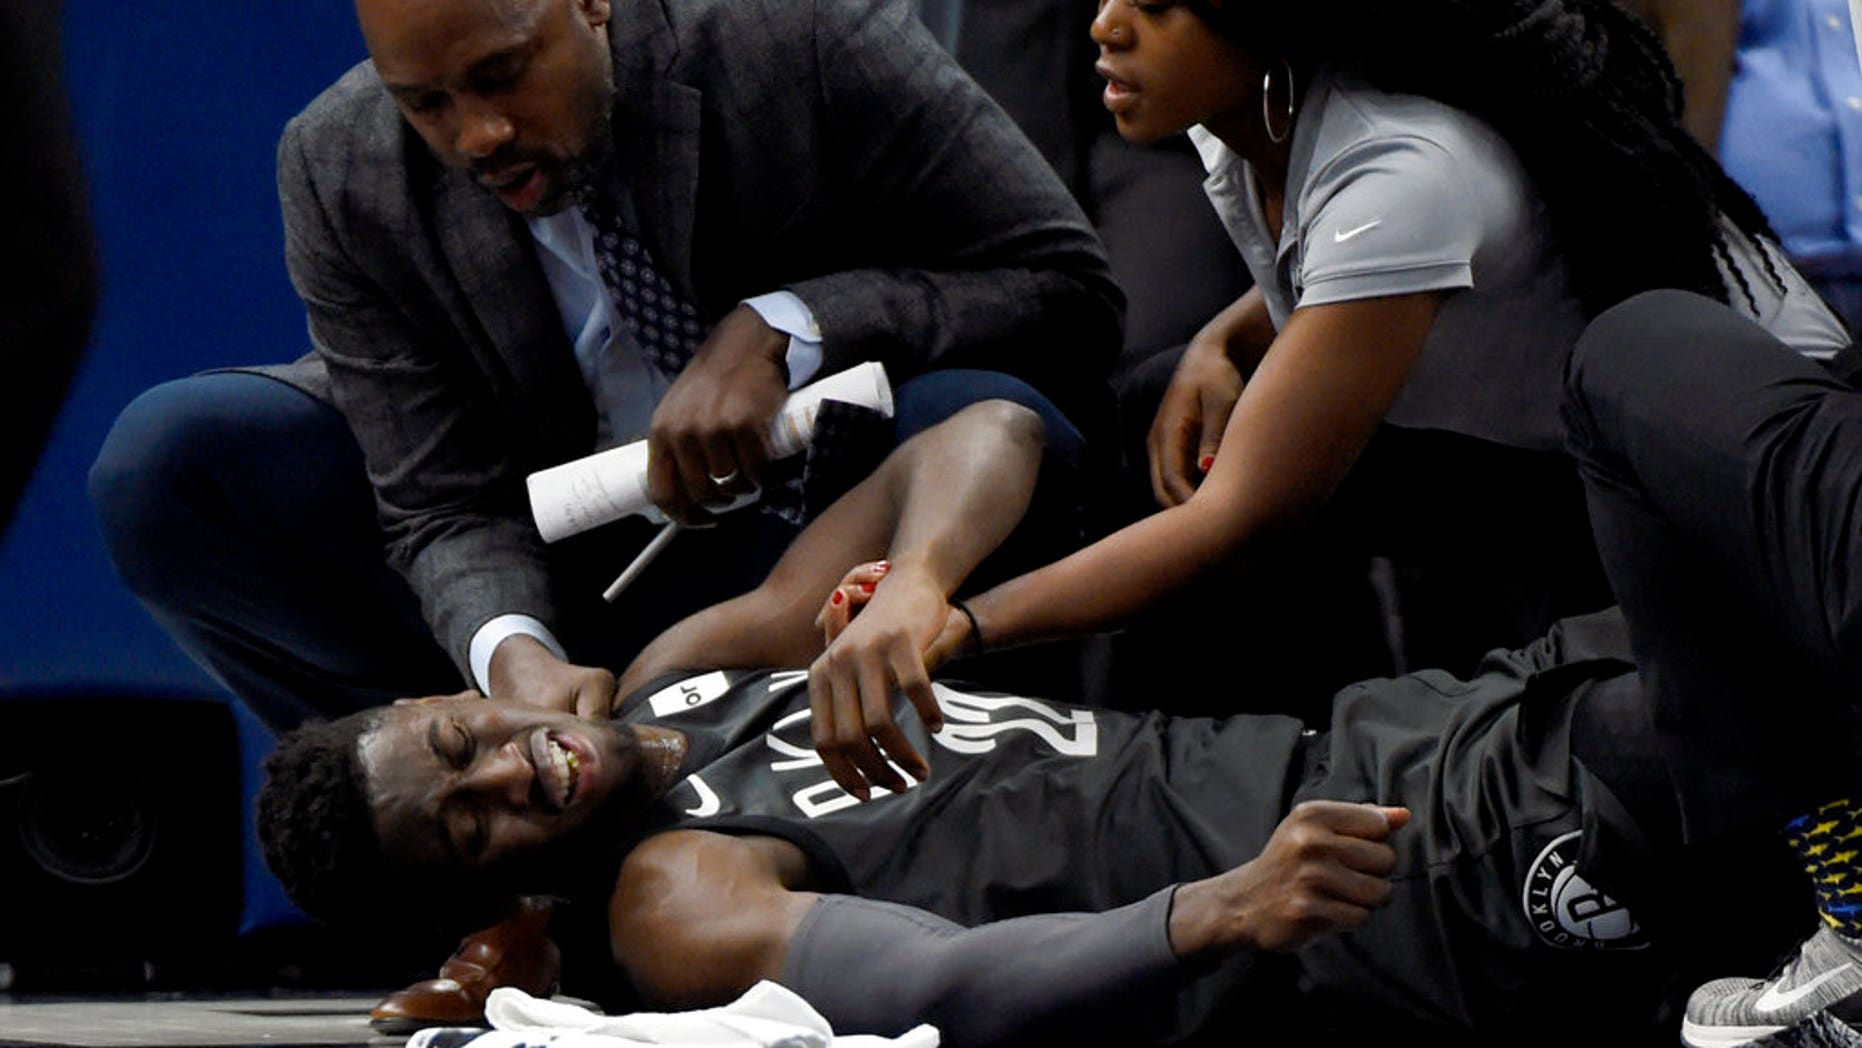 Brooklyn Nets guard Caris LeVert (22) is tended to after an injury during the second quarter of a game against the Minnesota Timberwolves.